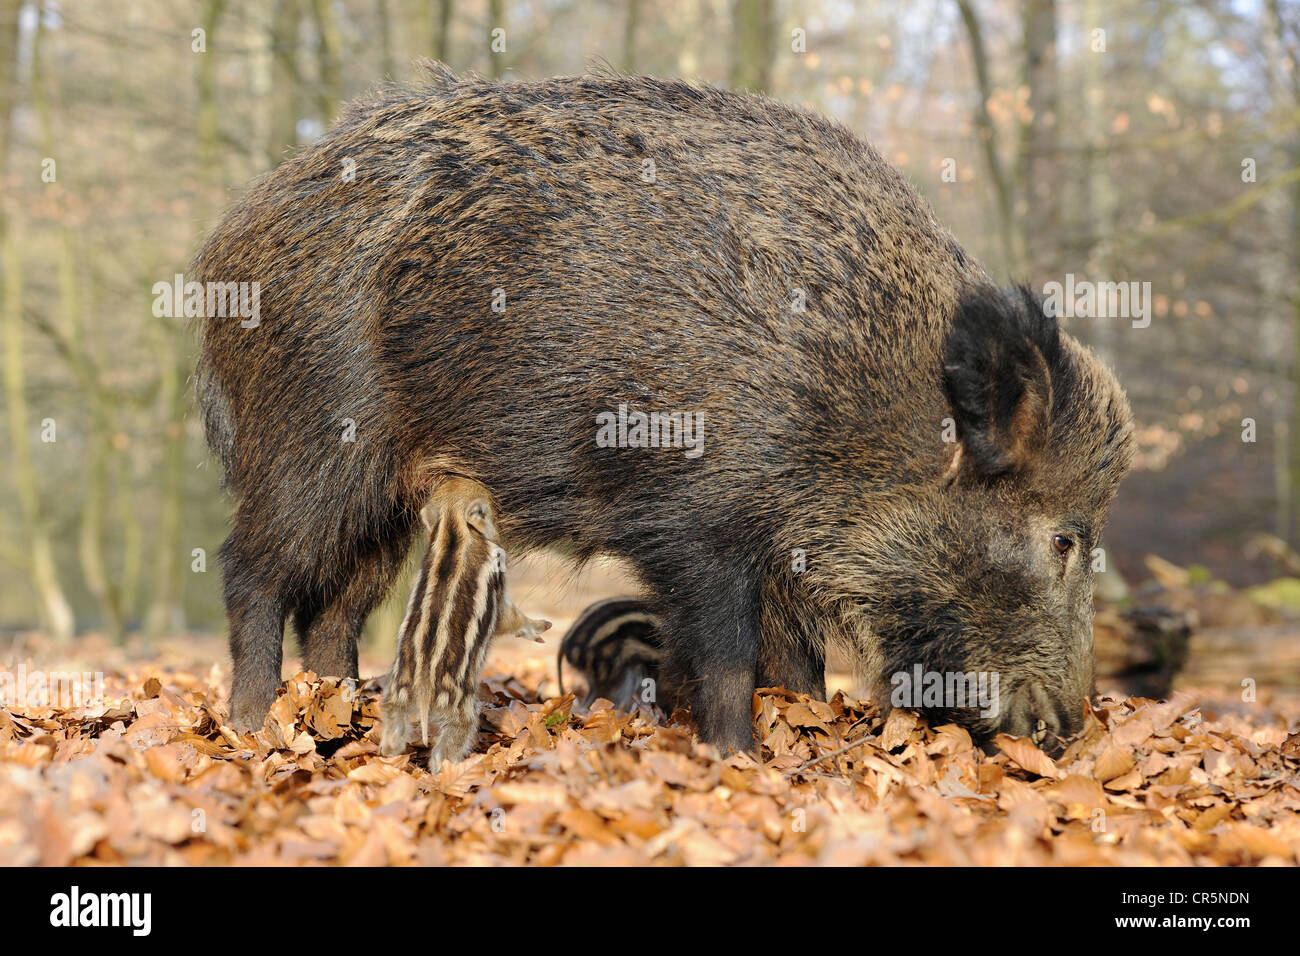 Wild Boars (Sus scrofa), sow with a suckling piglet, in an enclosure, North Rhine-Westphalia, Germany, Europe - Stock Image